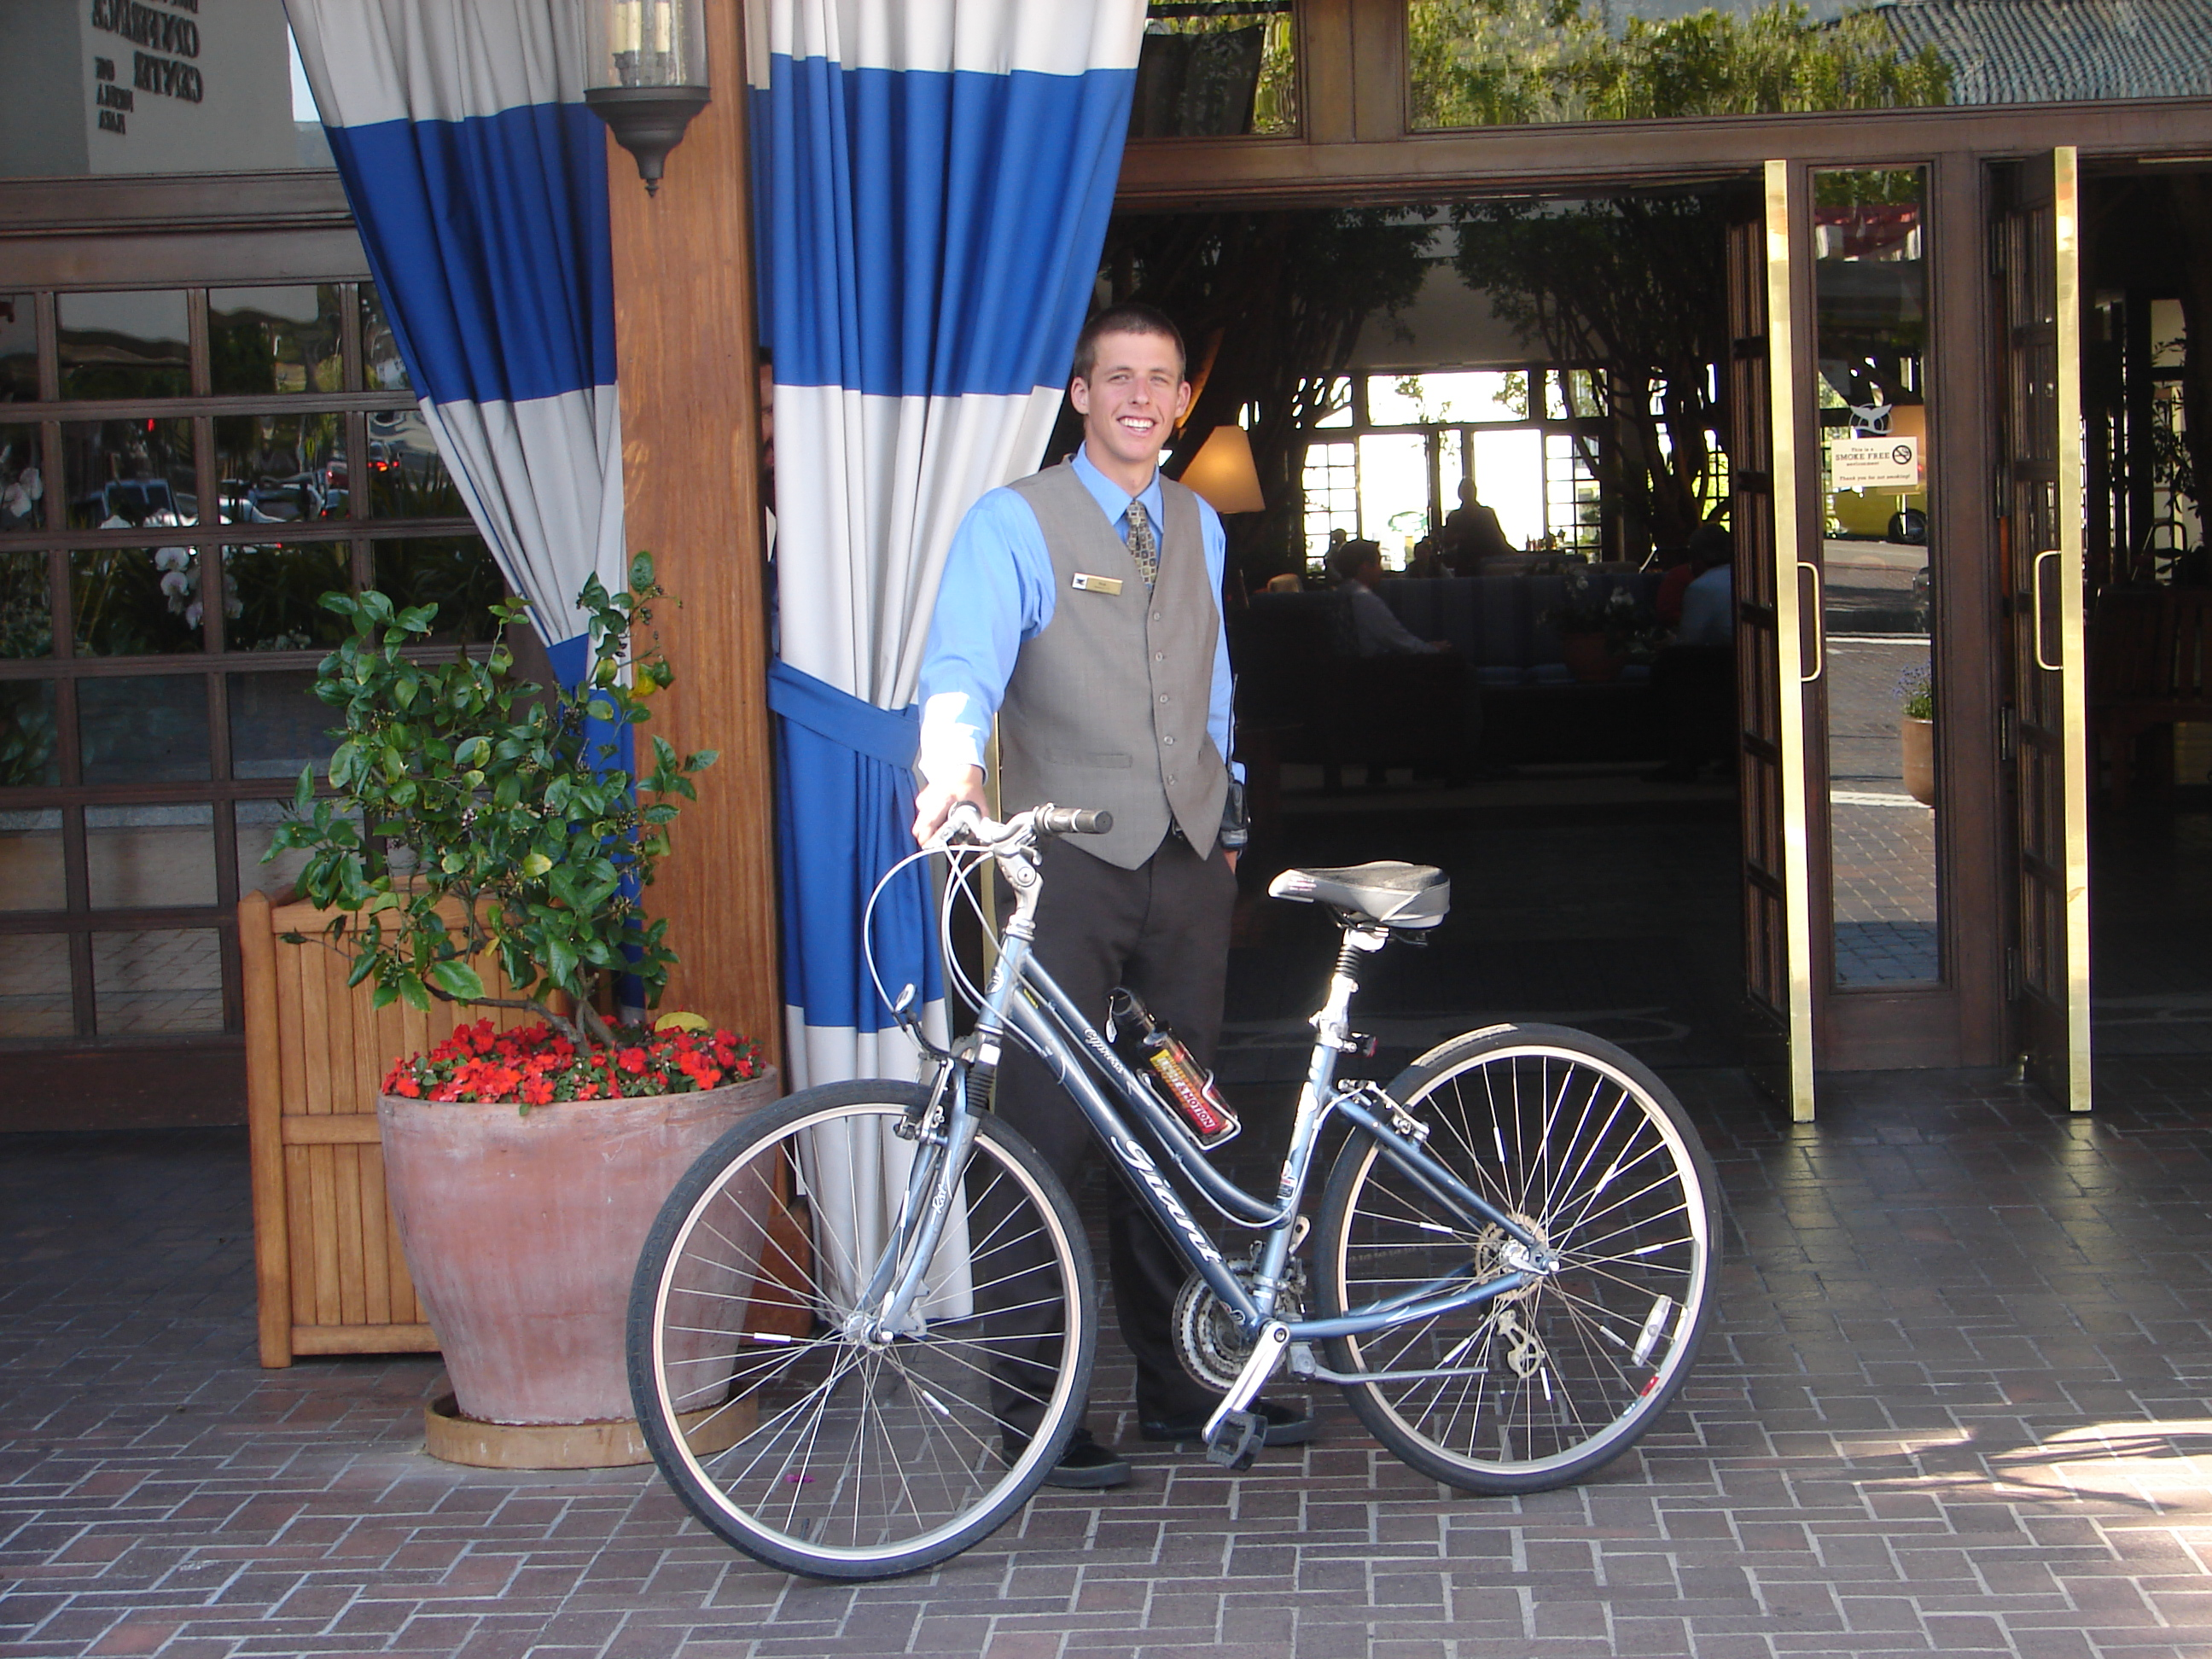 Nick - cheery valet and savvy cyclist